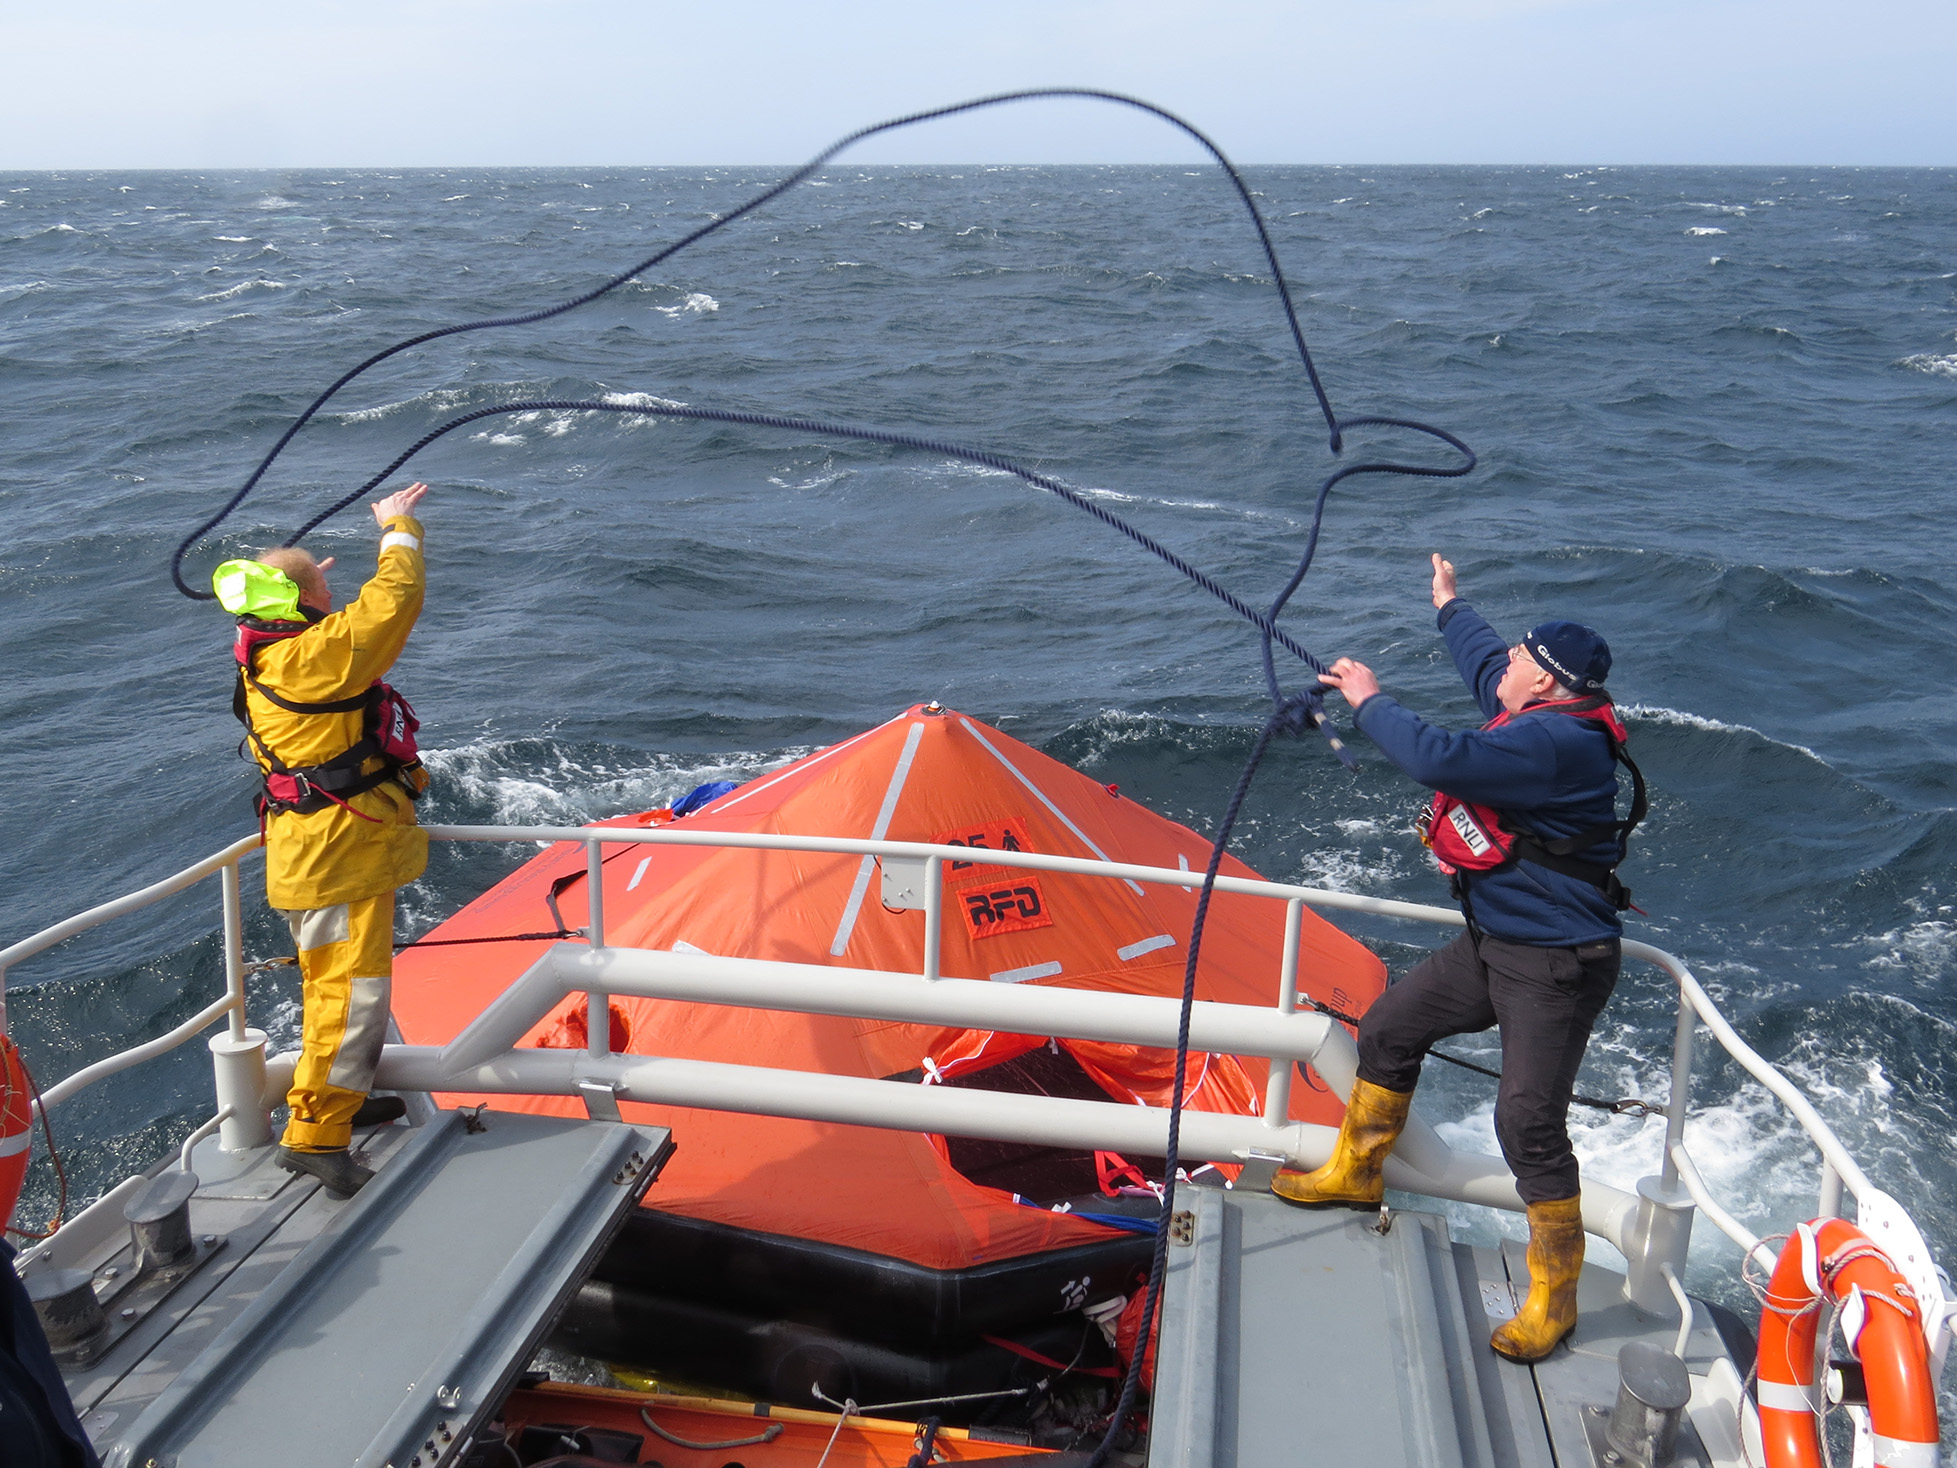 Two crew members lasso liferaft to secure to lifeboat